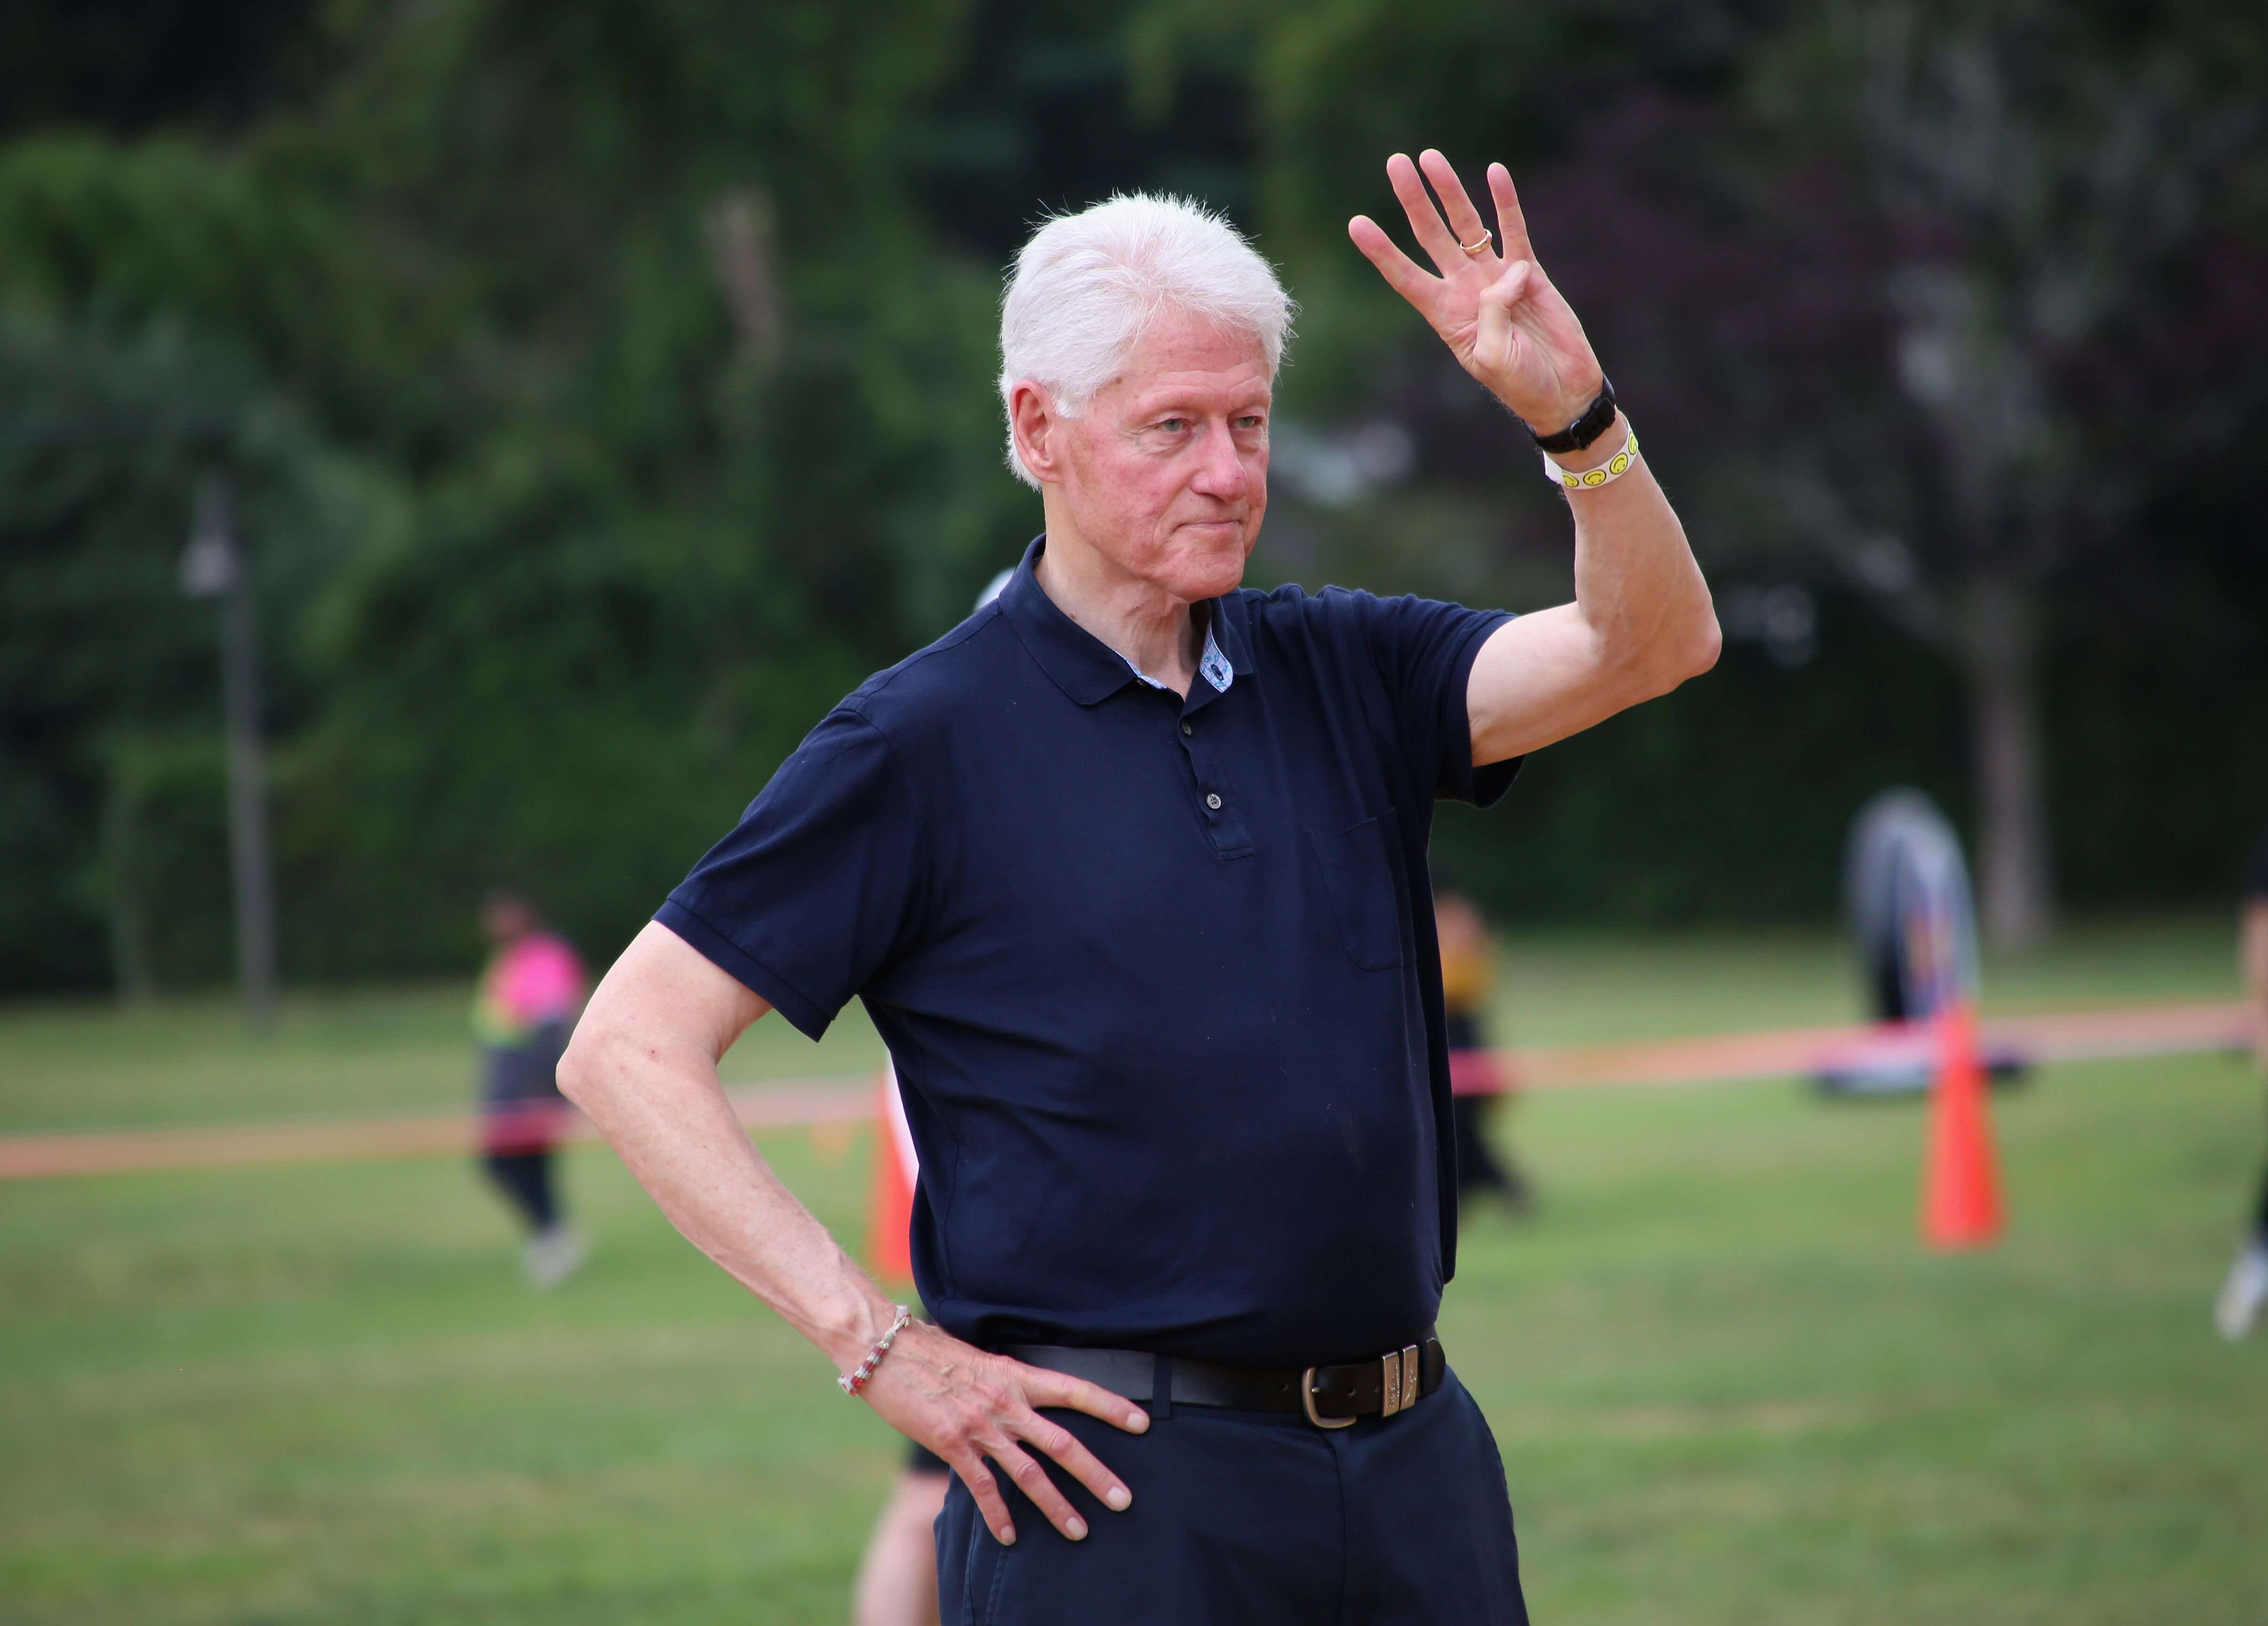 Bill Clinton at the East Hampton Artists and Writers Charity Softball Game in 2019 | Source: Getty Images